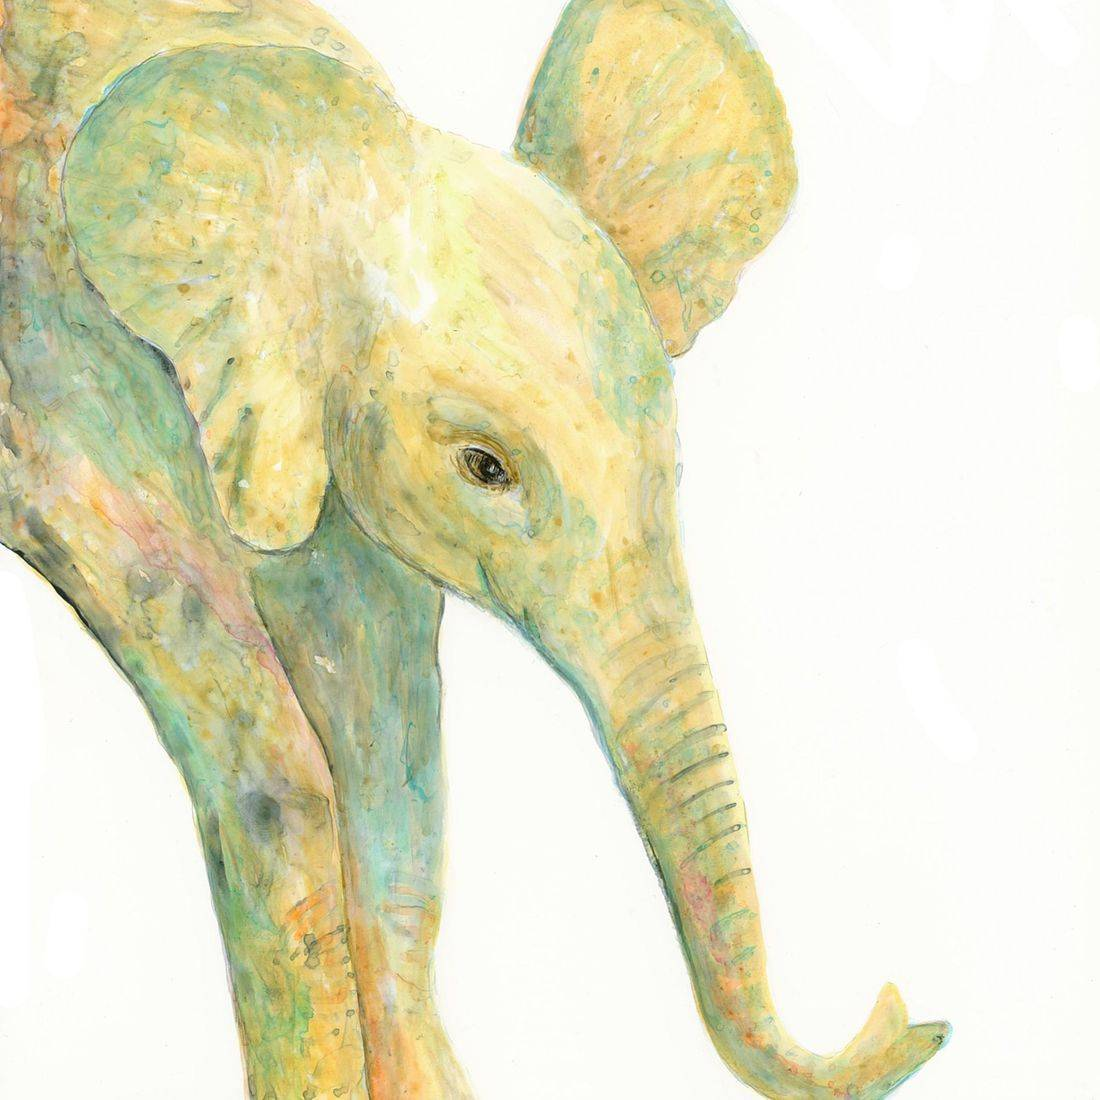 Elephant painting, Acrylic Ink on Yupo Paper, by Barbara Polc